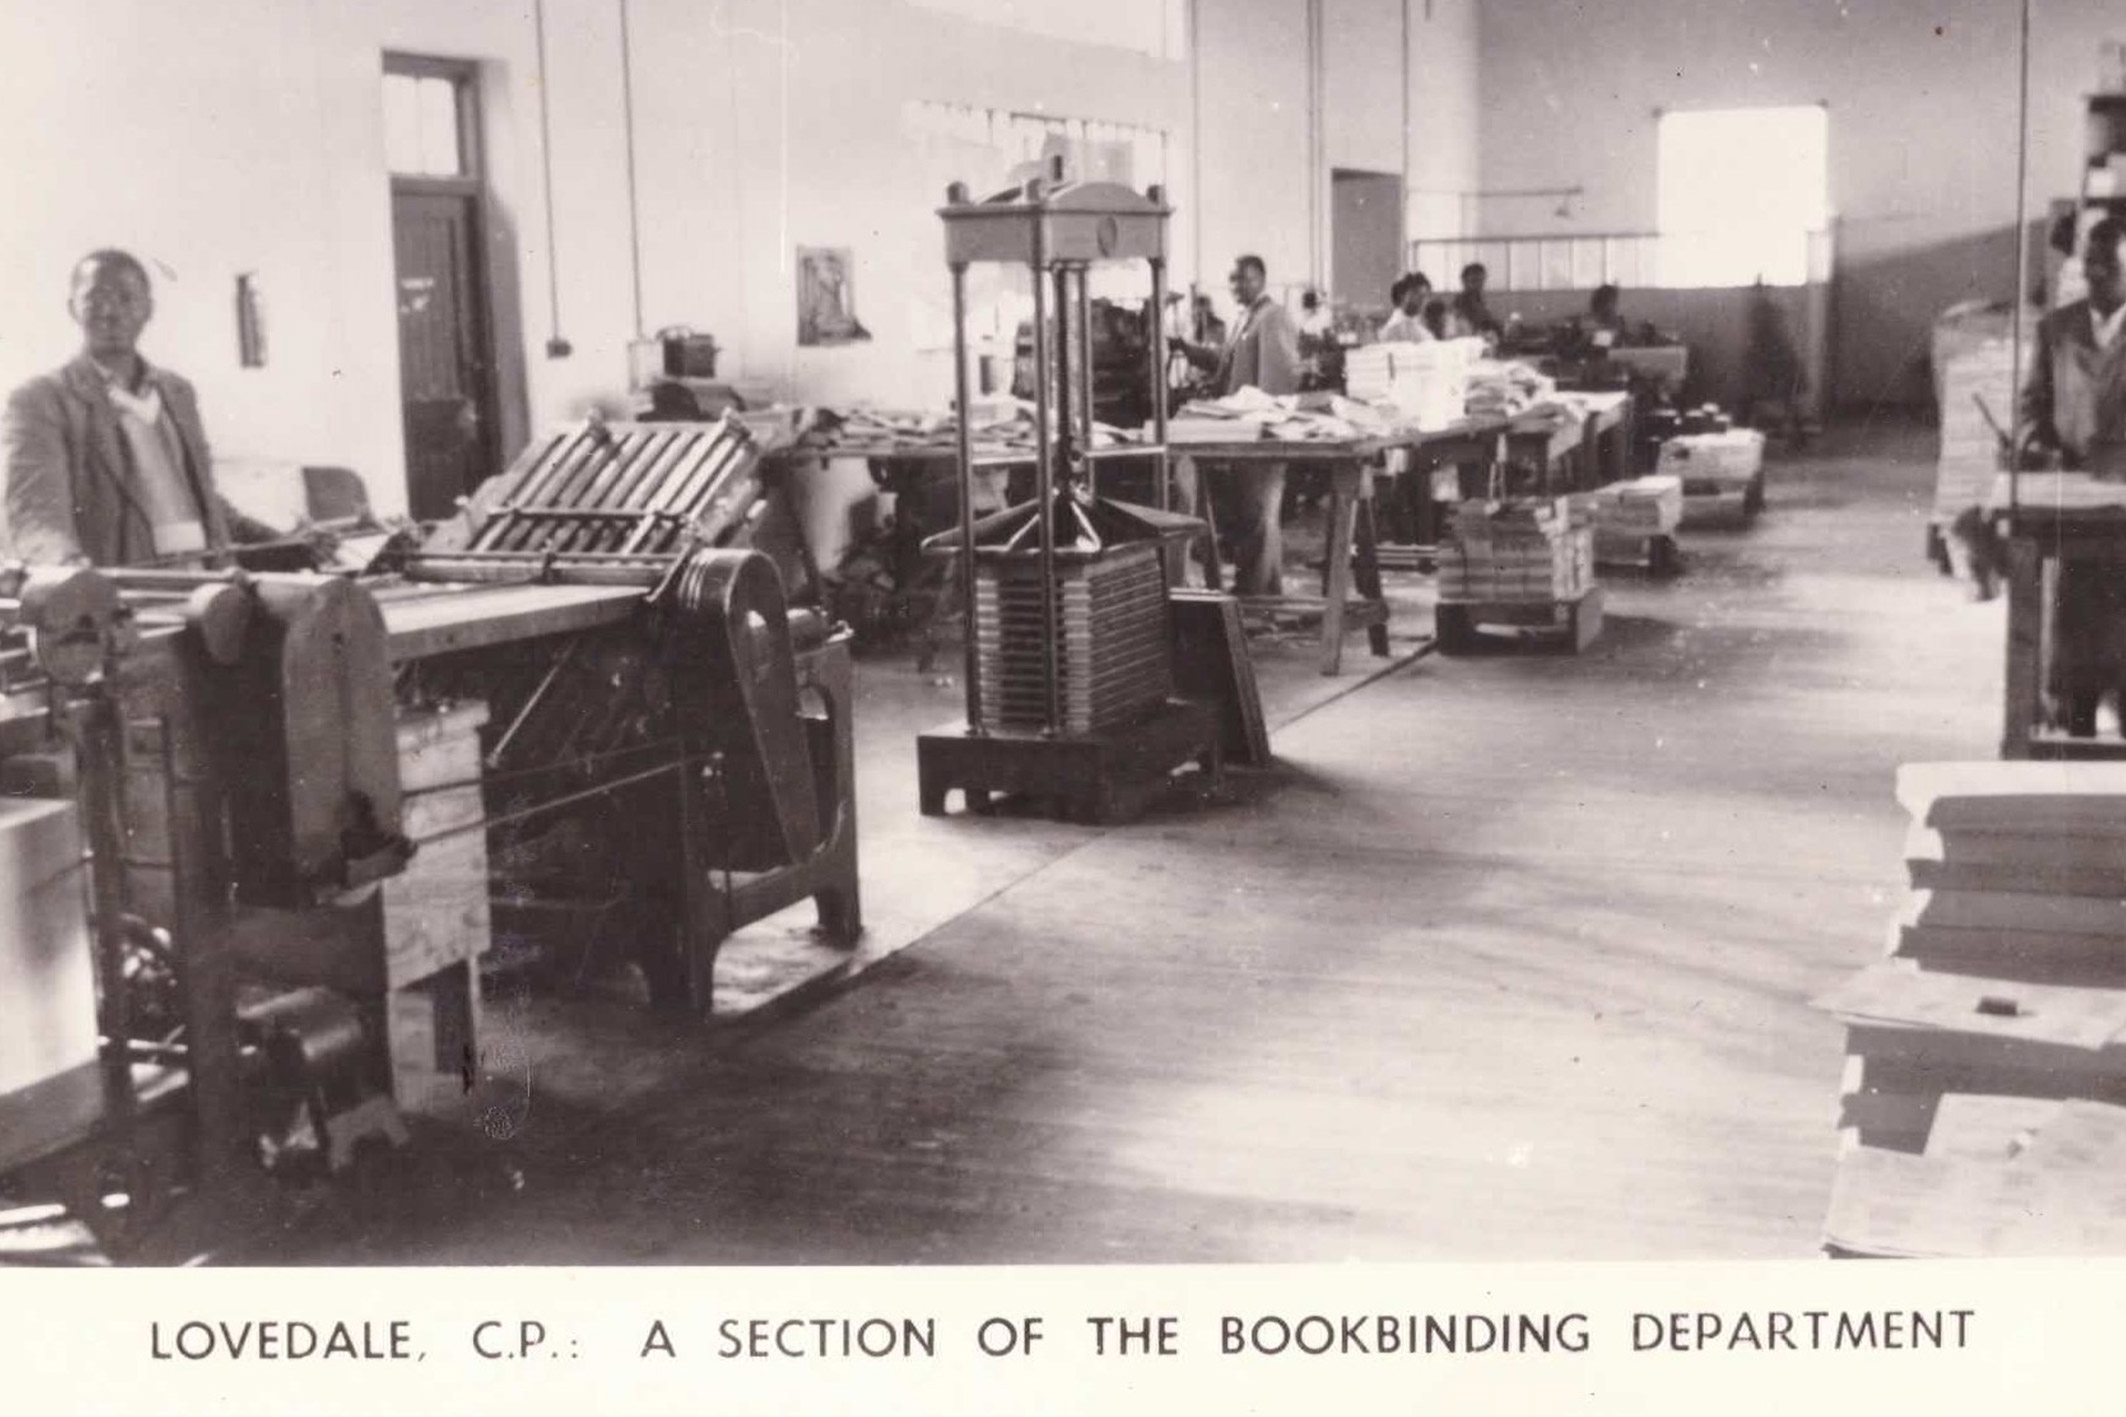 Undated: The Lovedale Press bookbinding department. (Photograph by Rhodes Tremeer, Alice)